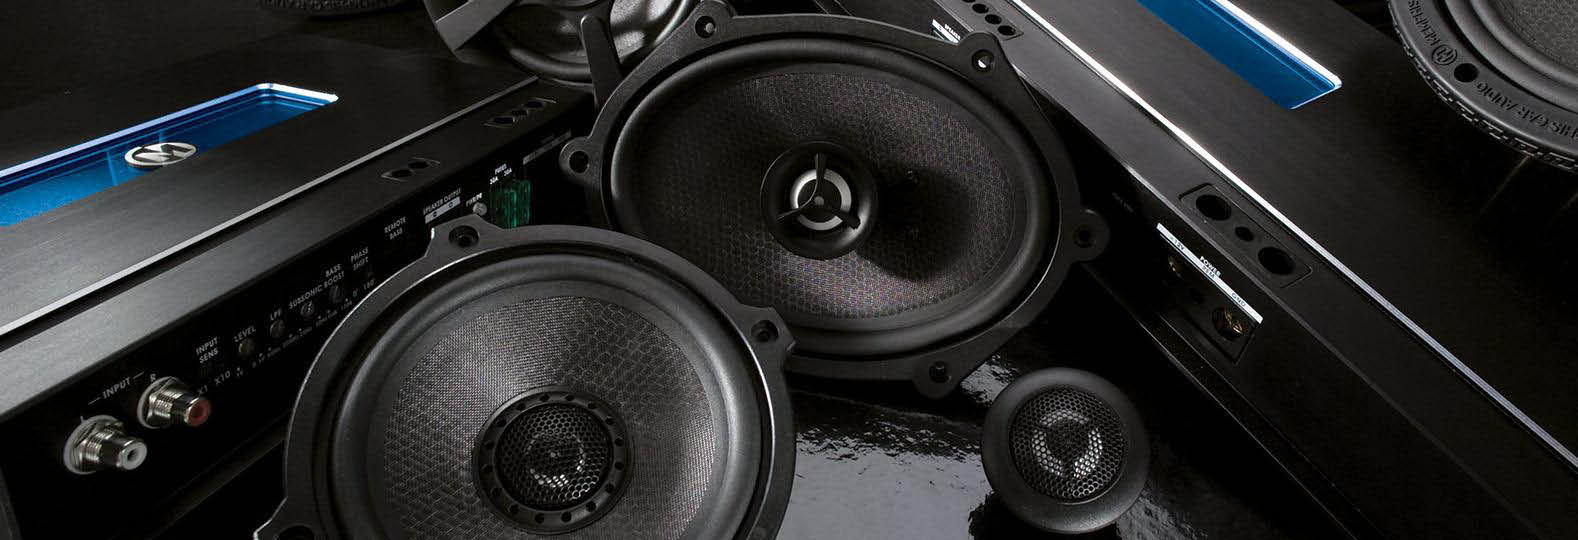 Sound Decisions in Racine, Wisconsin car audio sales, service and installations near Kenosha banner